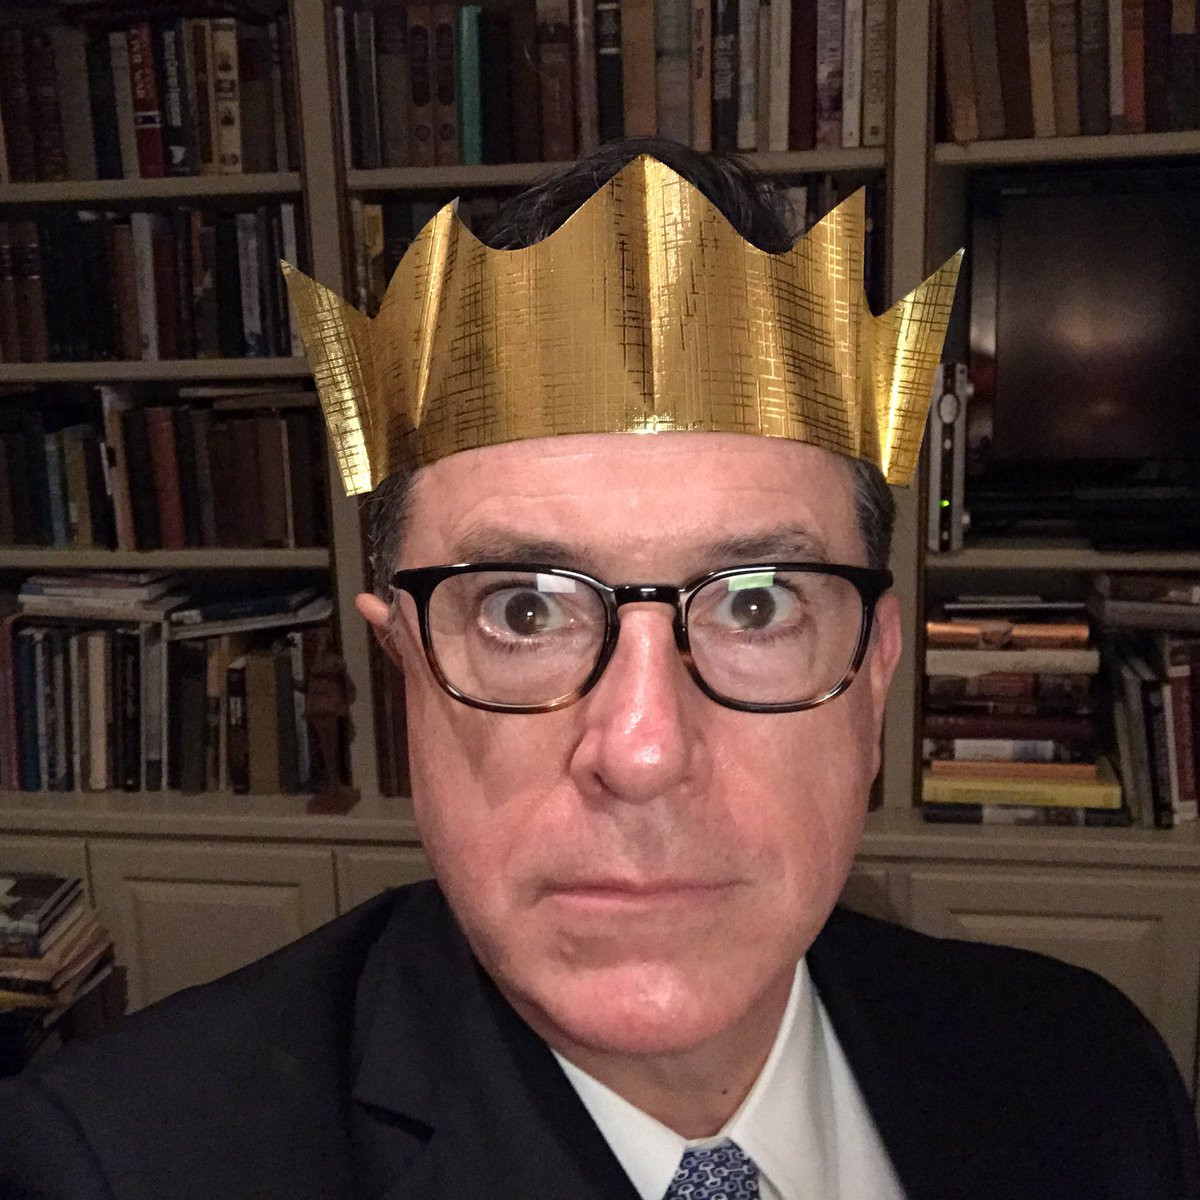 Stephen Colbert On Twitter I Am The King Of Christmas Your King